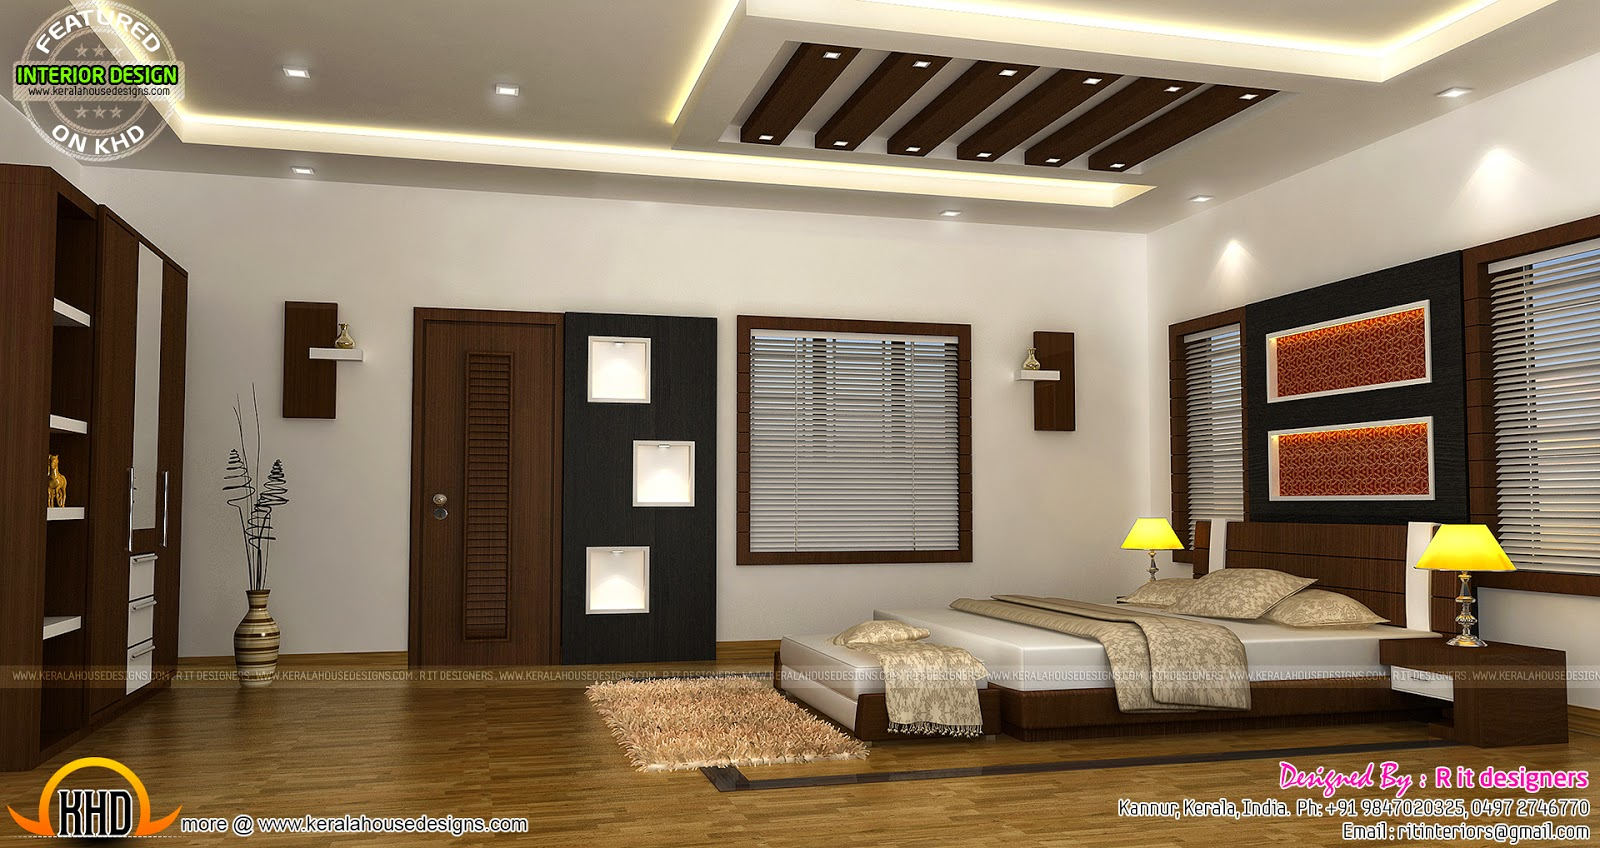 Bedroom interior design cost in india for Interior decorator fees